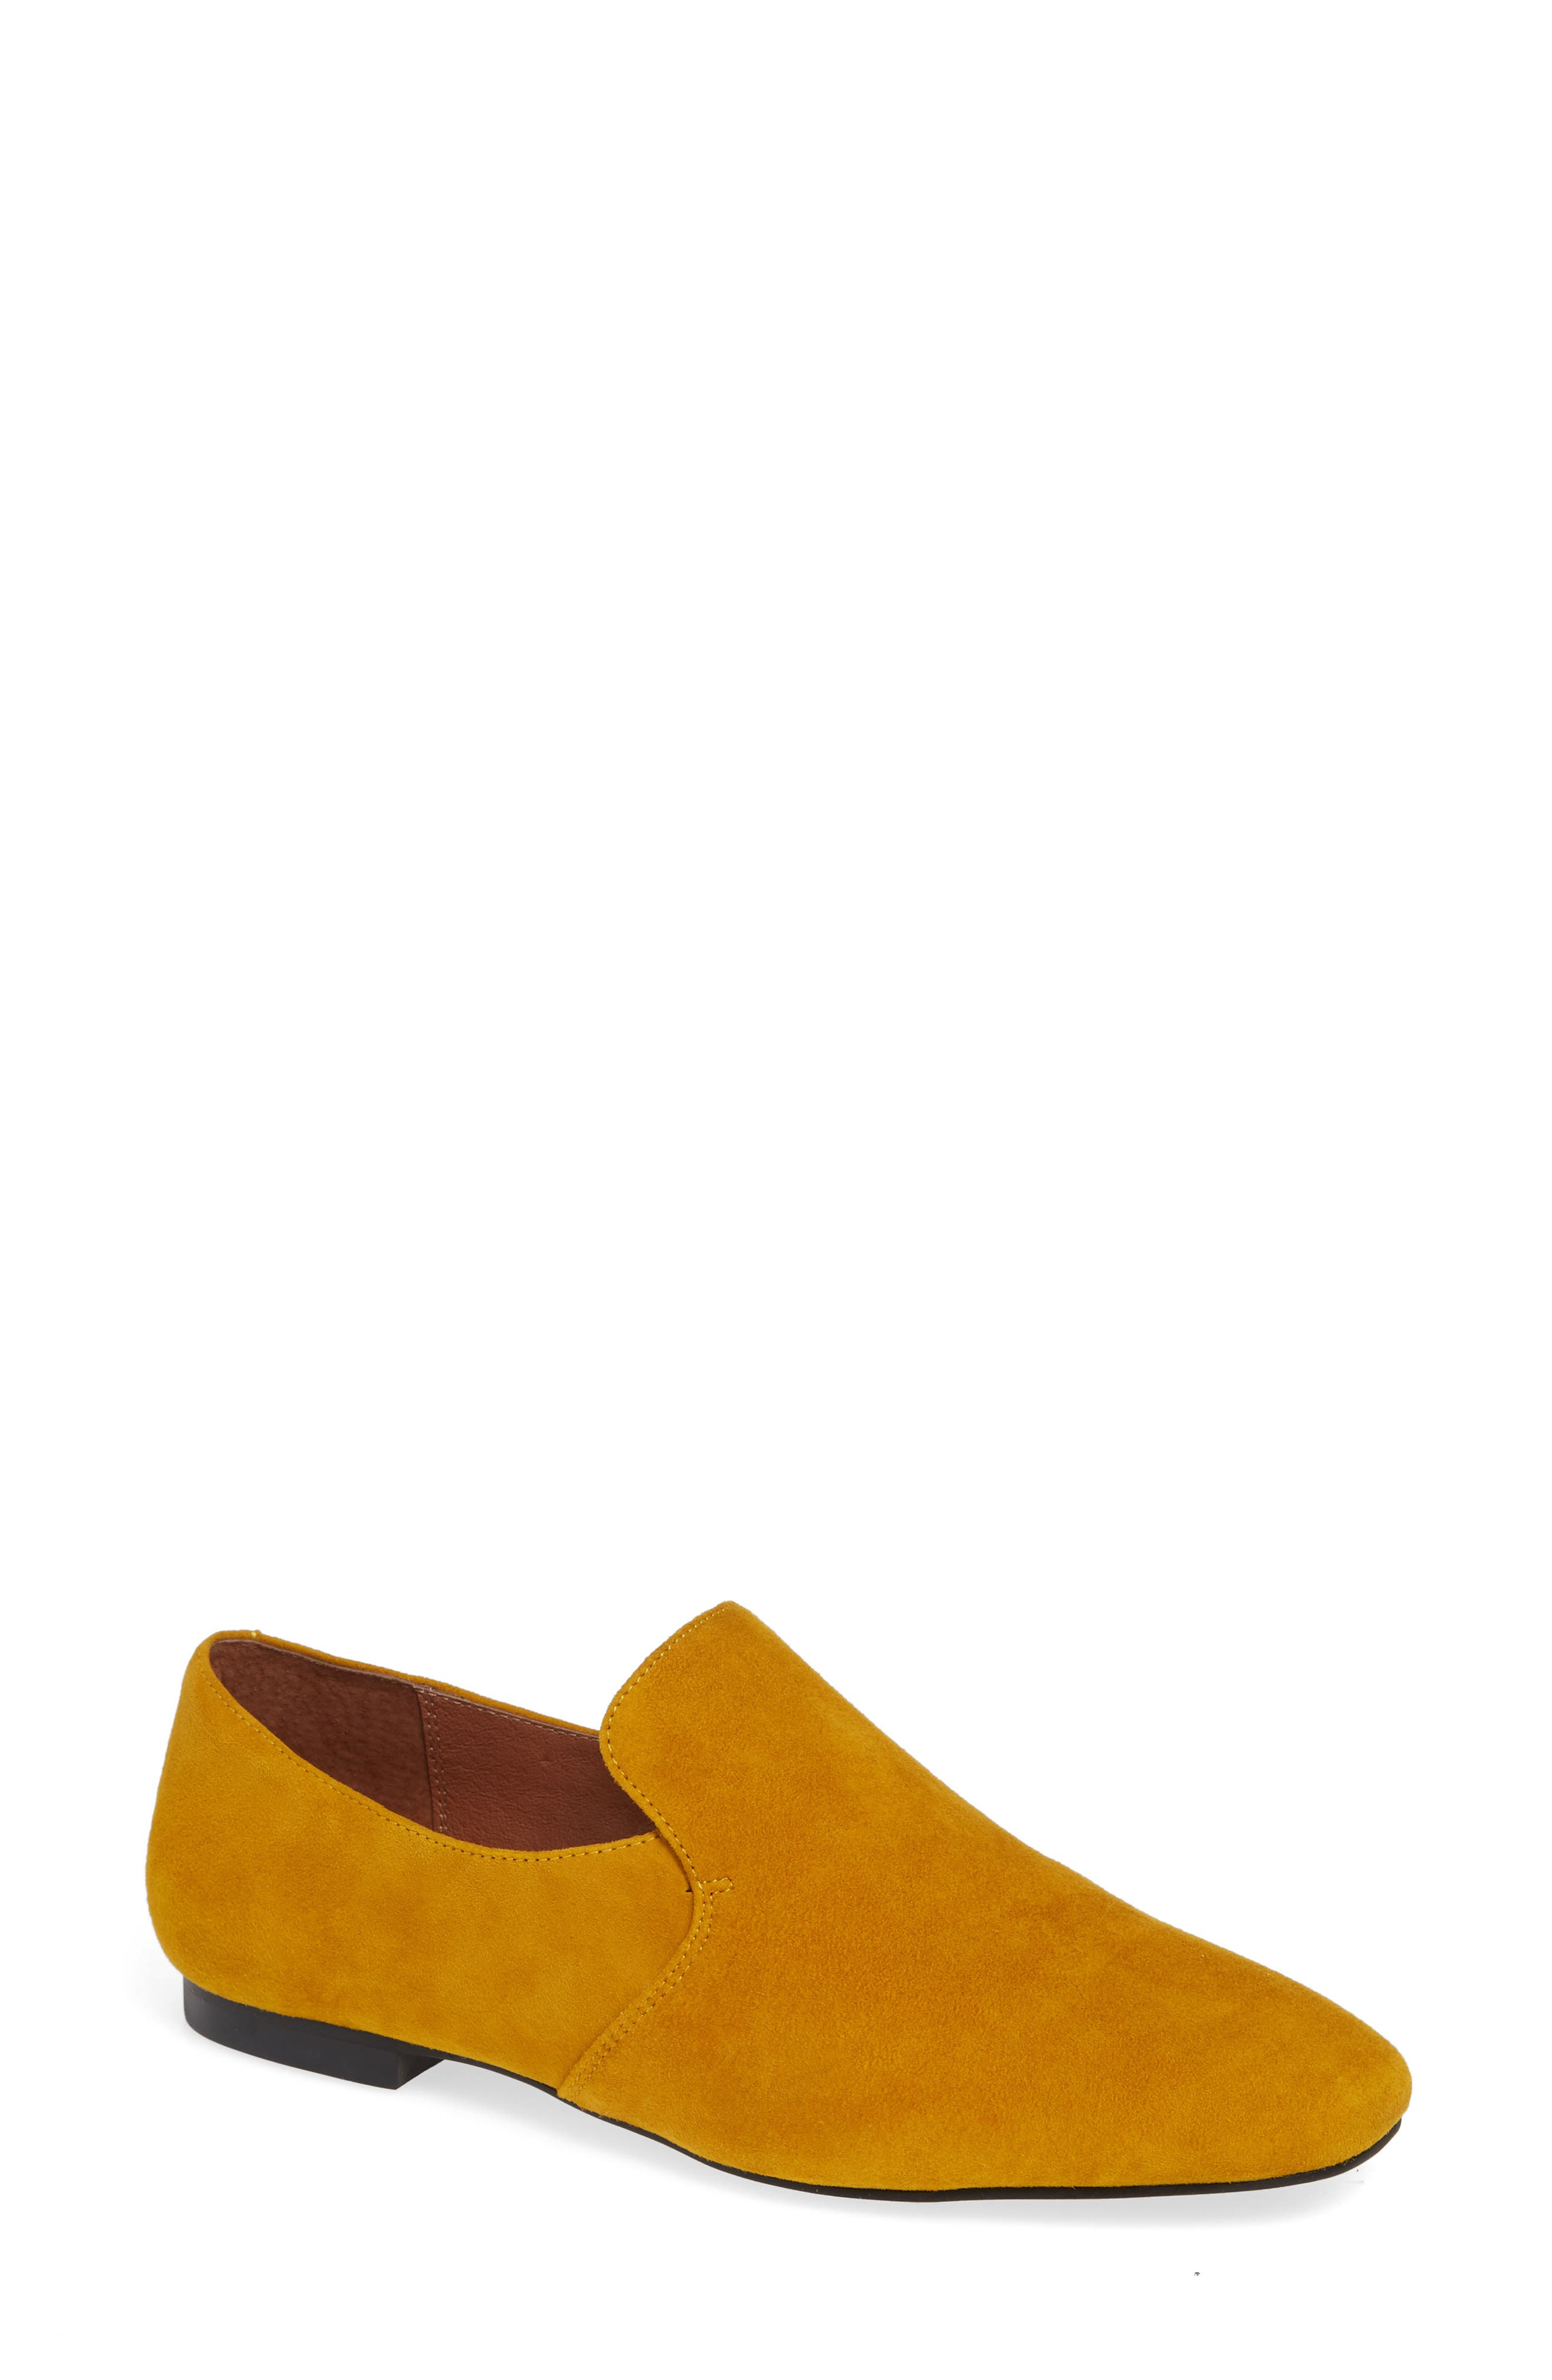 JEFFREY CAMPBELL PRIESTLY LOAFER